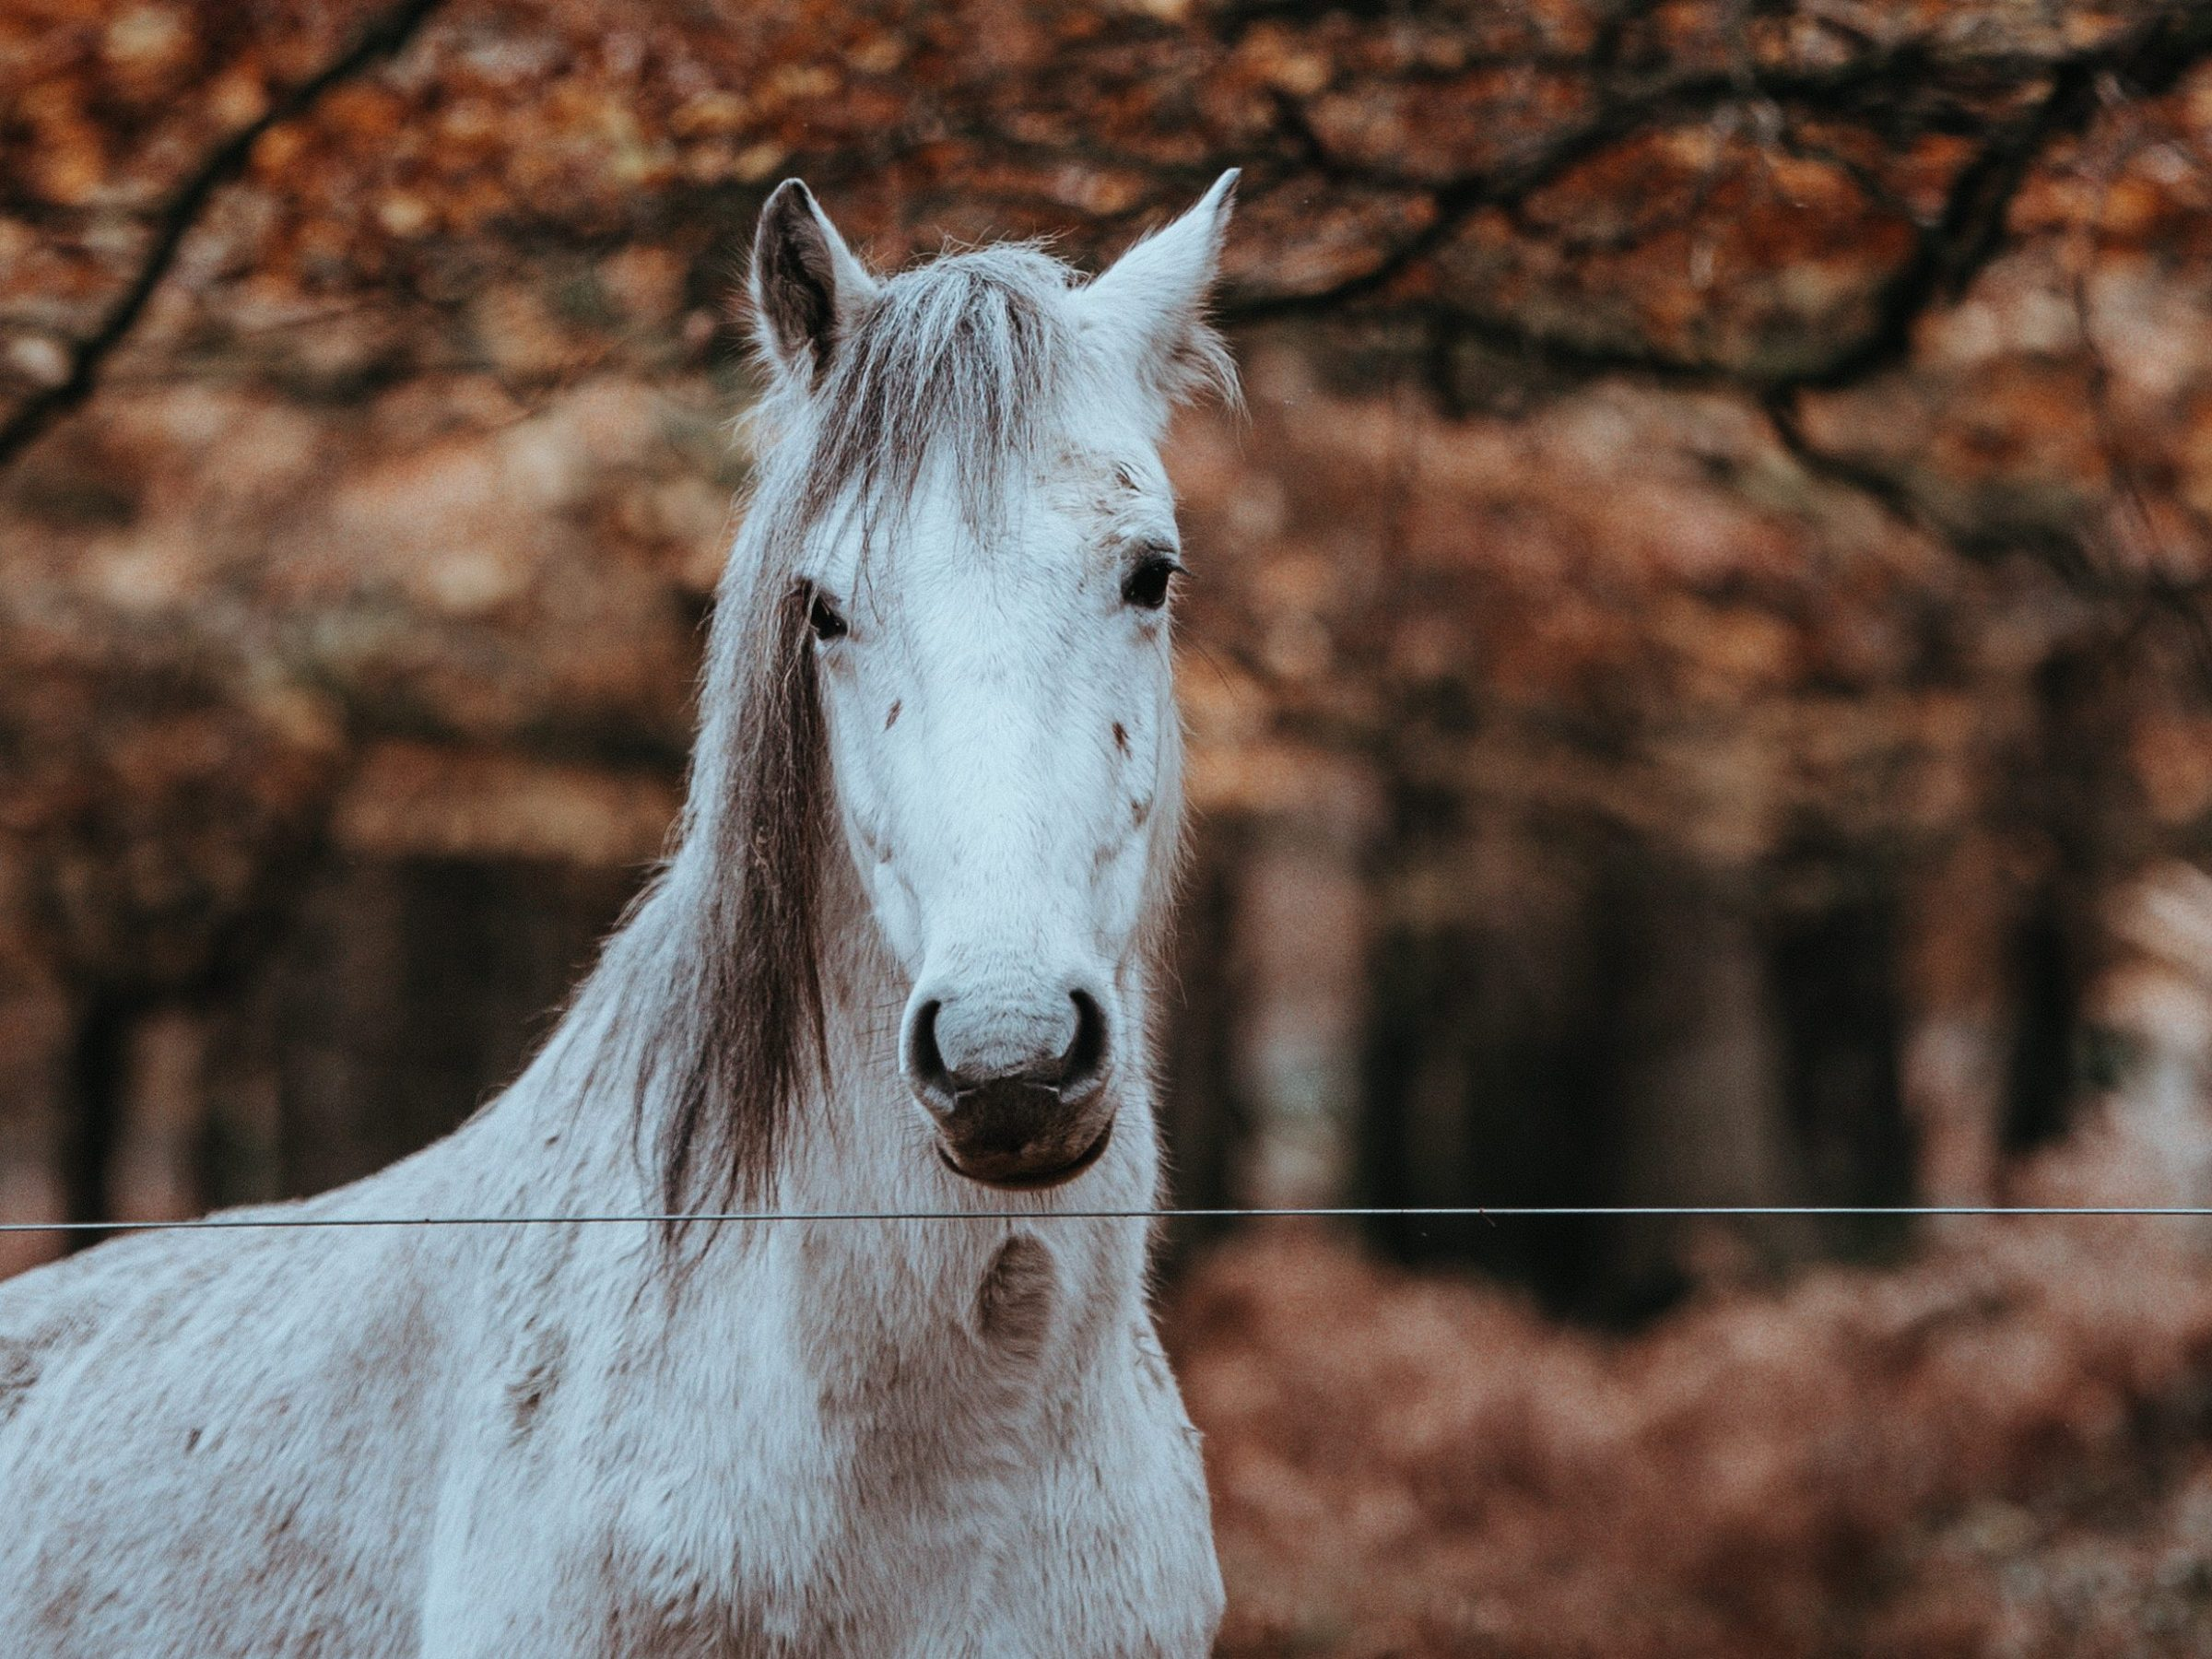 Horses without Halters in Turnout